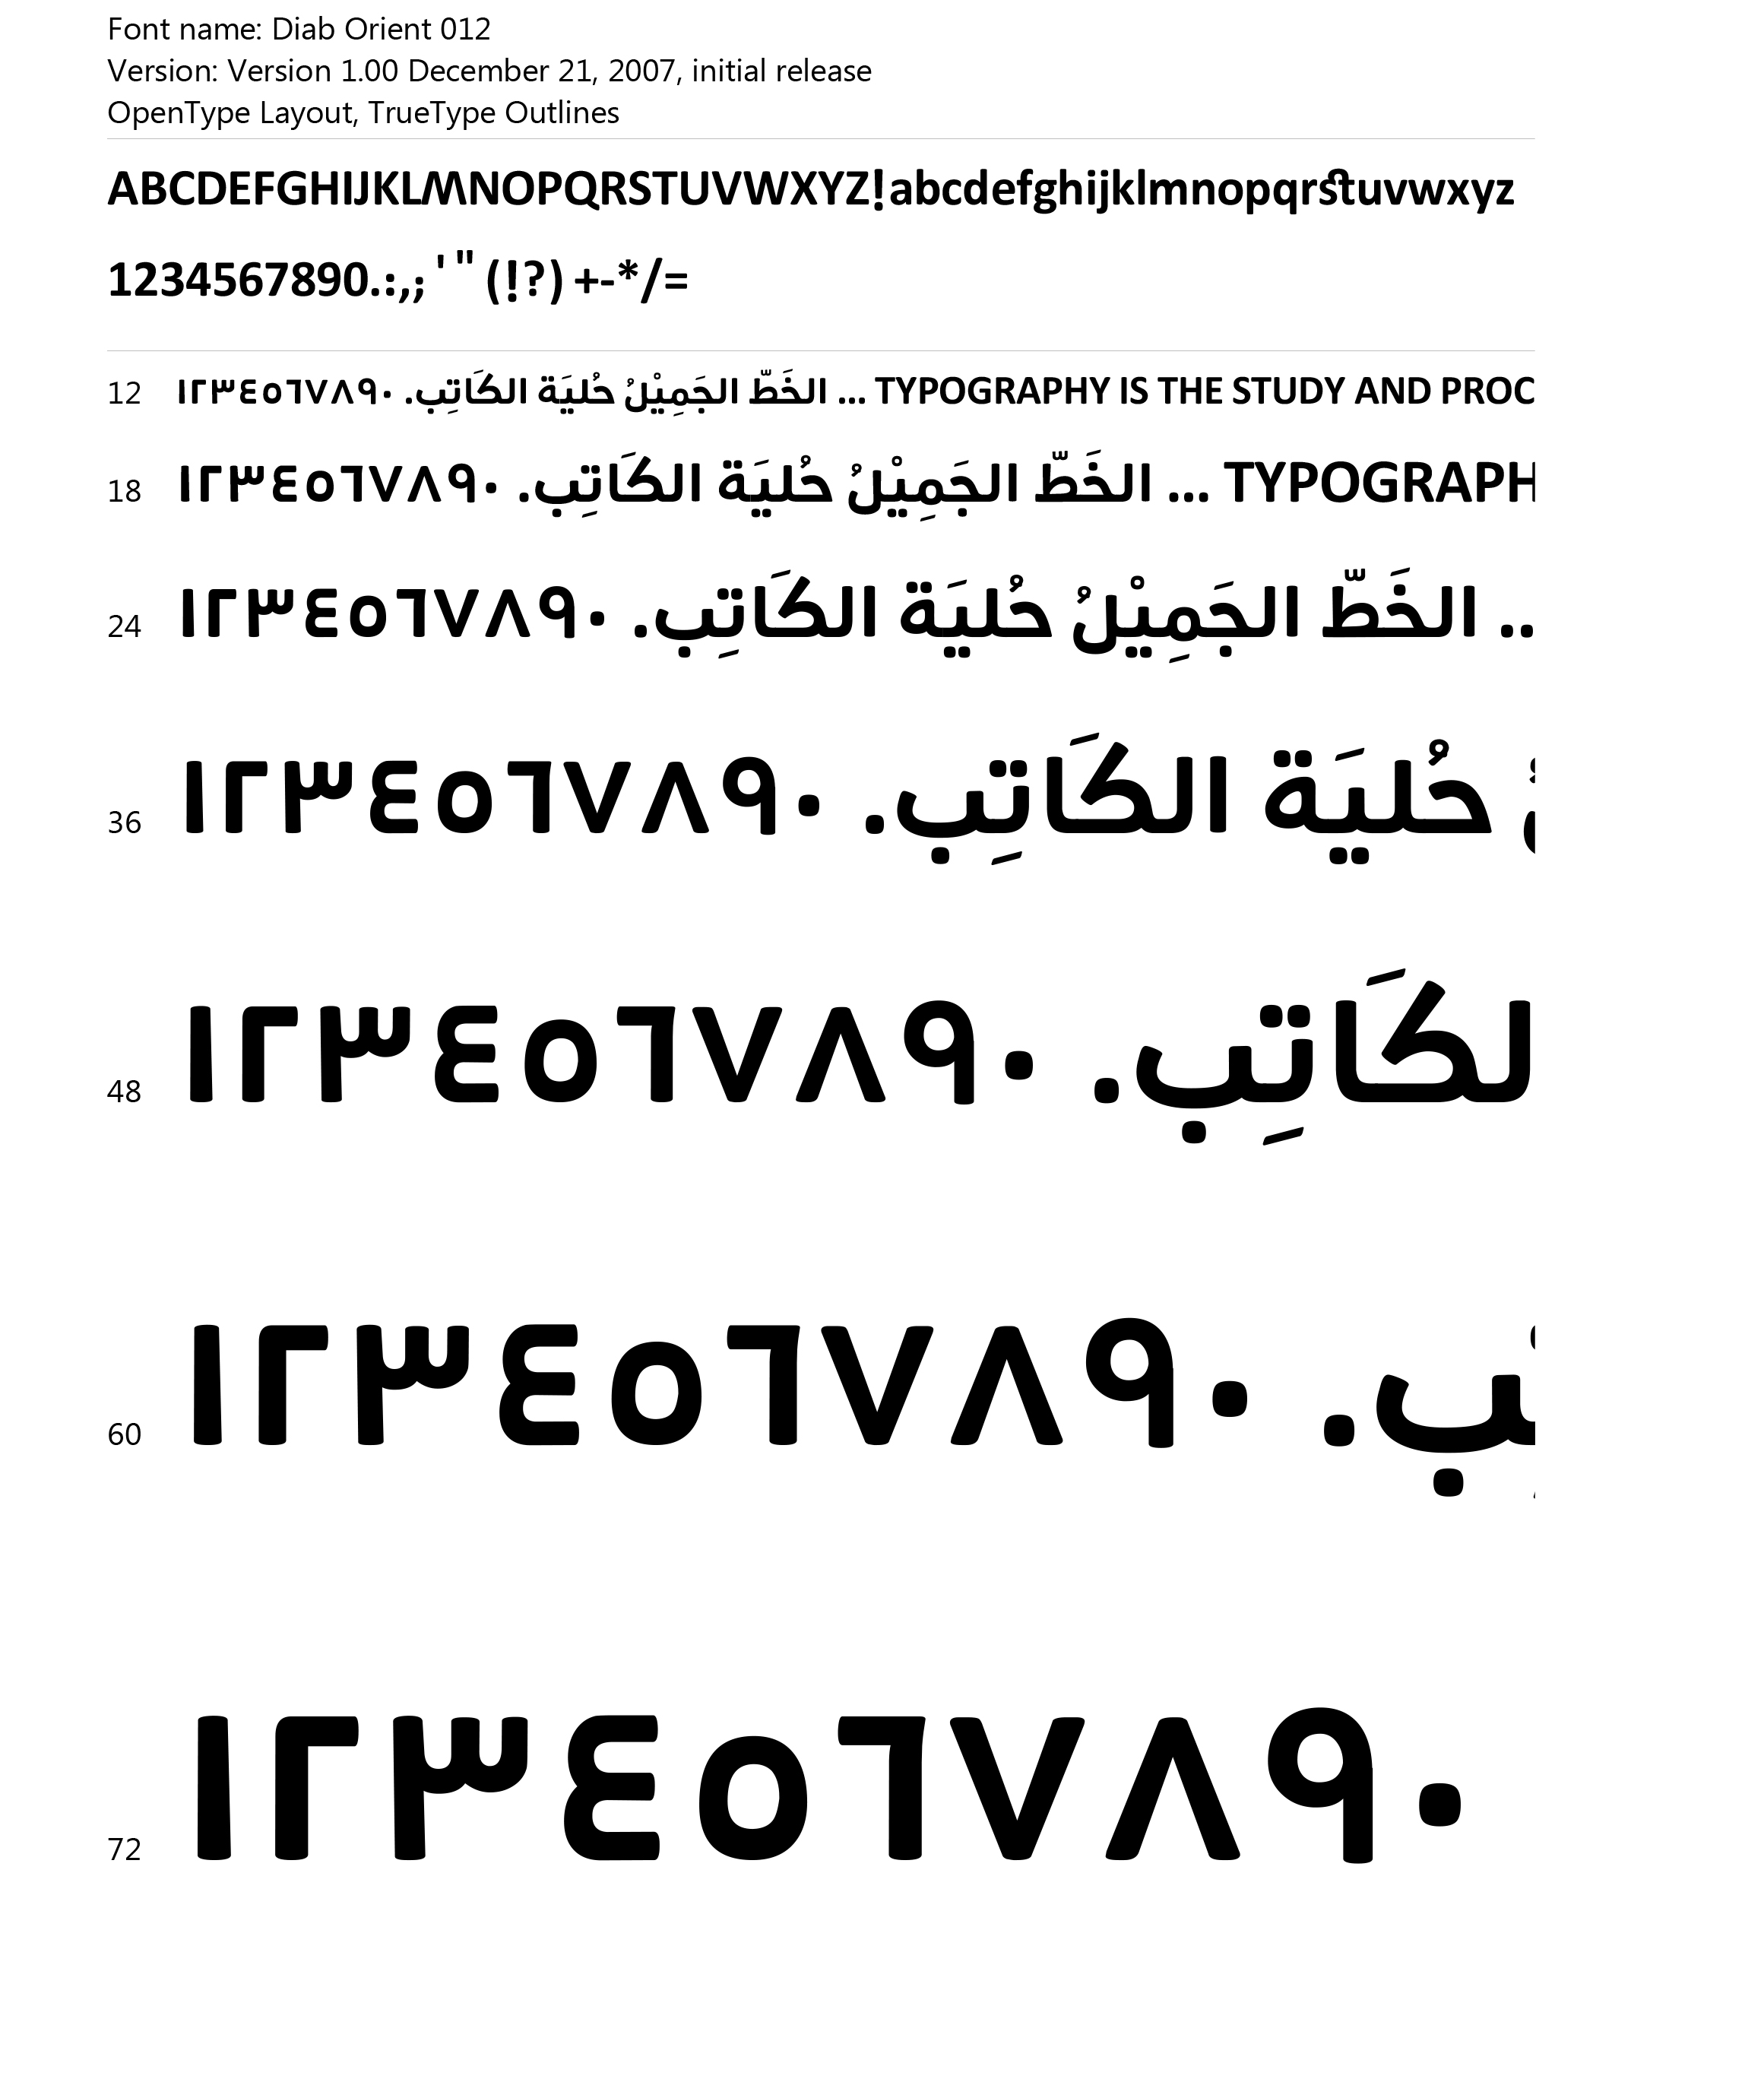 Diab Orient 018 Collection/18 font example image 7